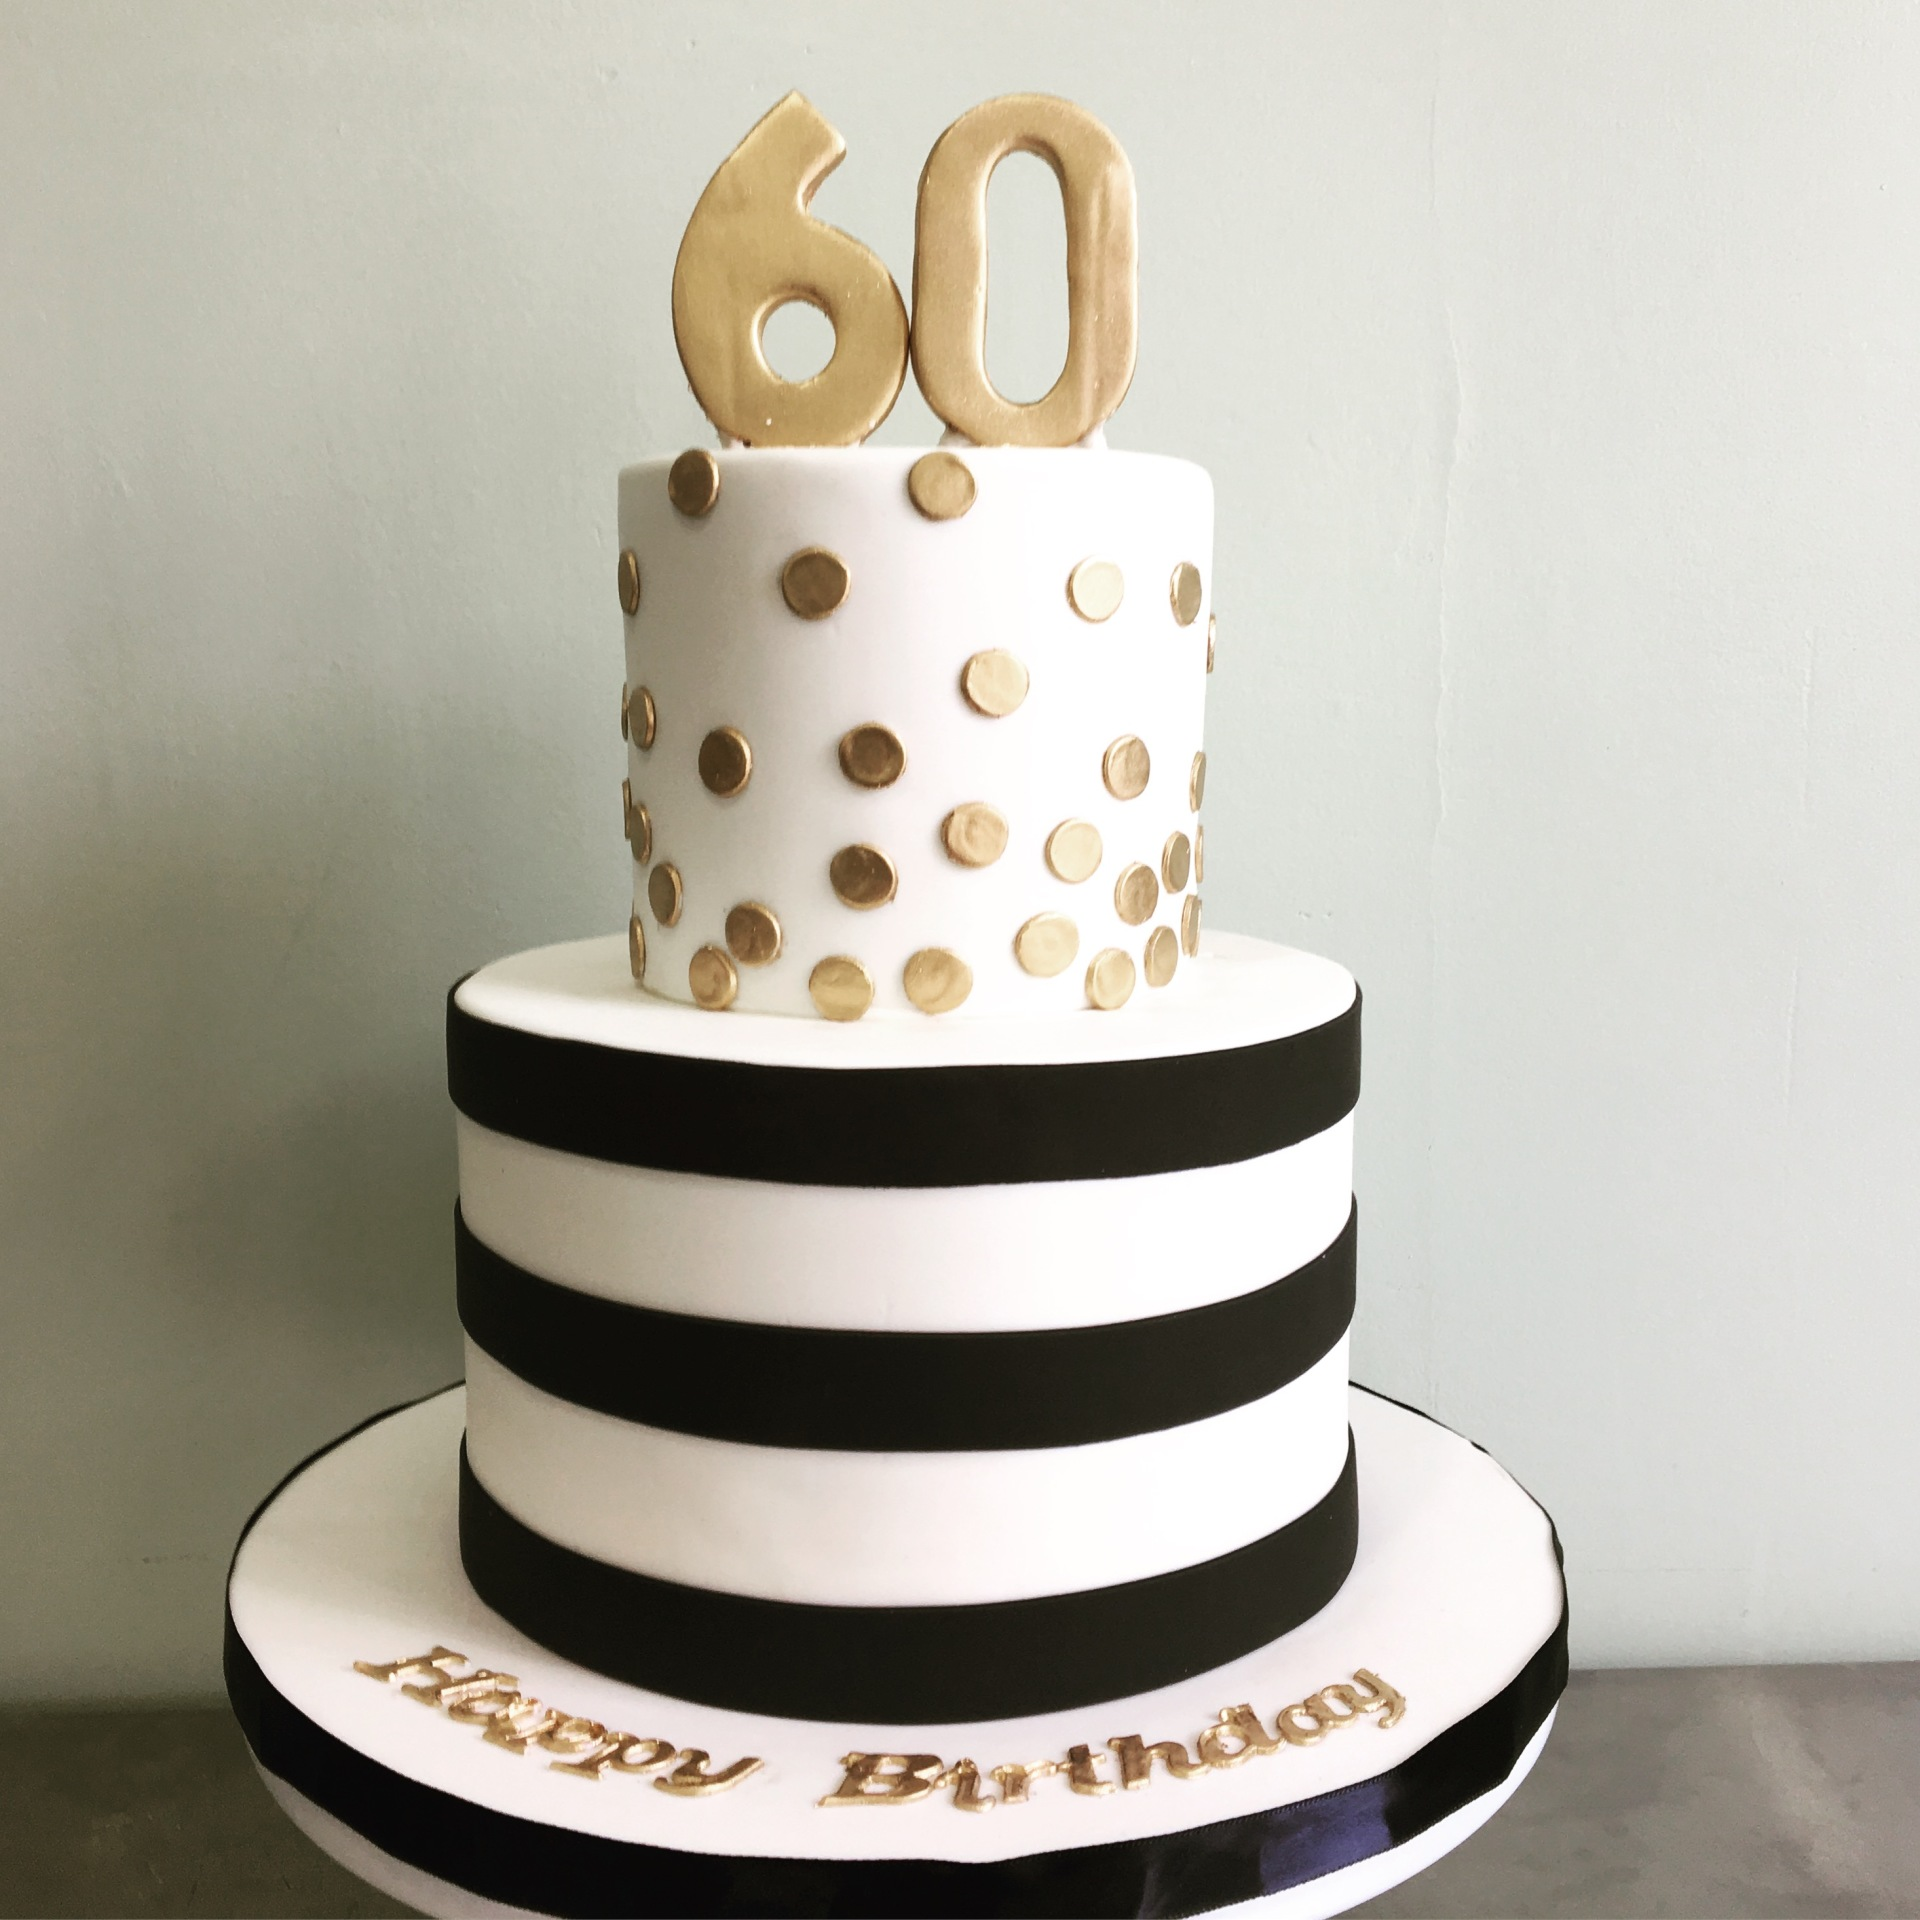 Custom Cakes NJ Black, white and gold cake with 60 on top